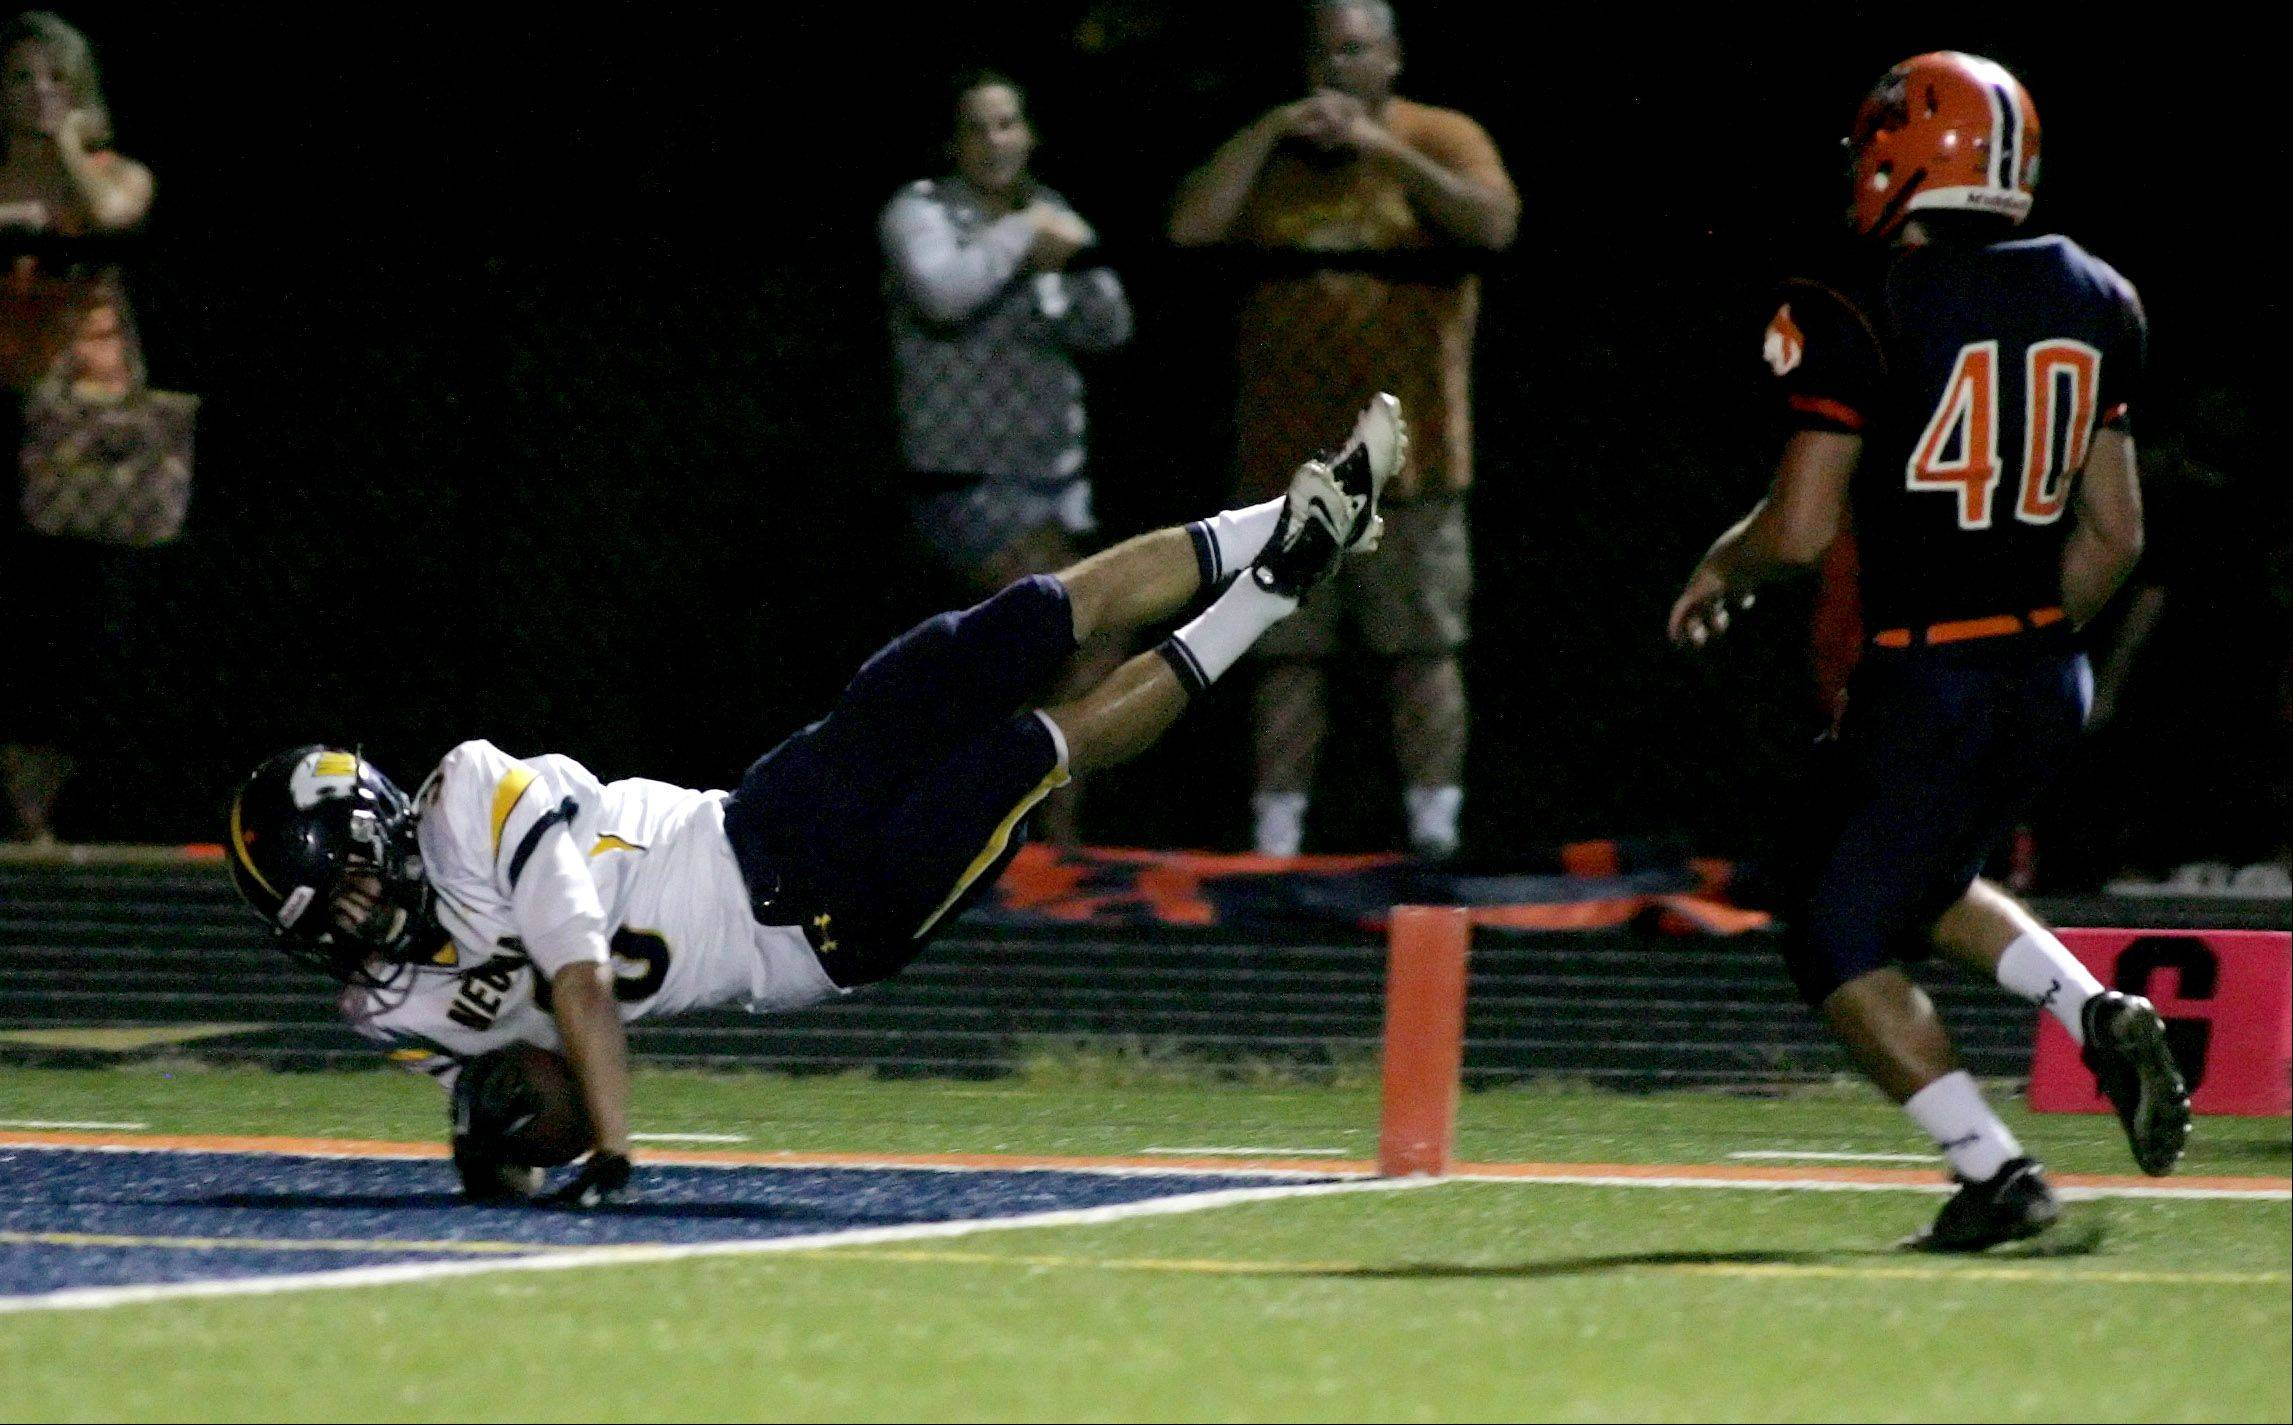 Neuqua Valley's Mikey Dudek dives for a touchdown in football action Friday against Naperville North.